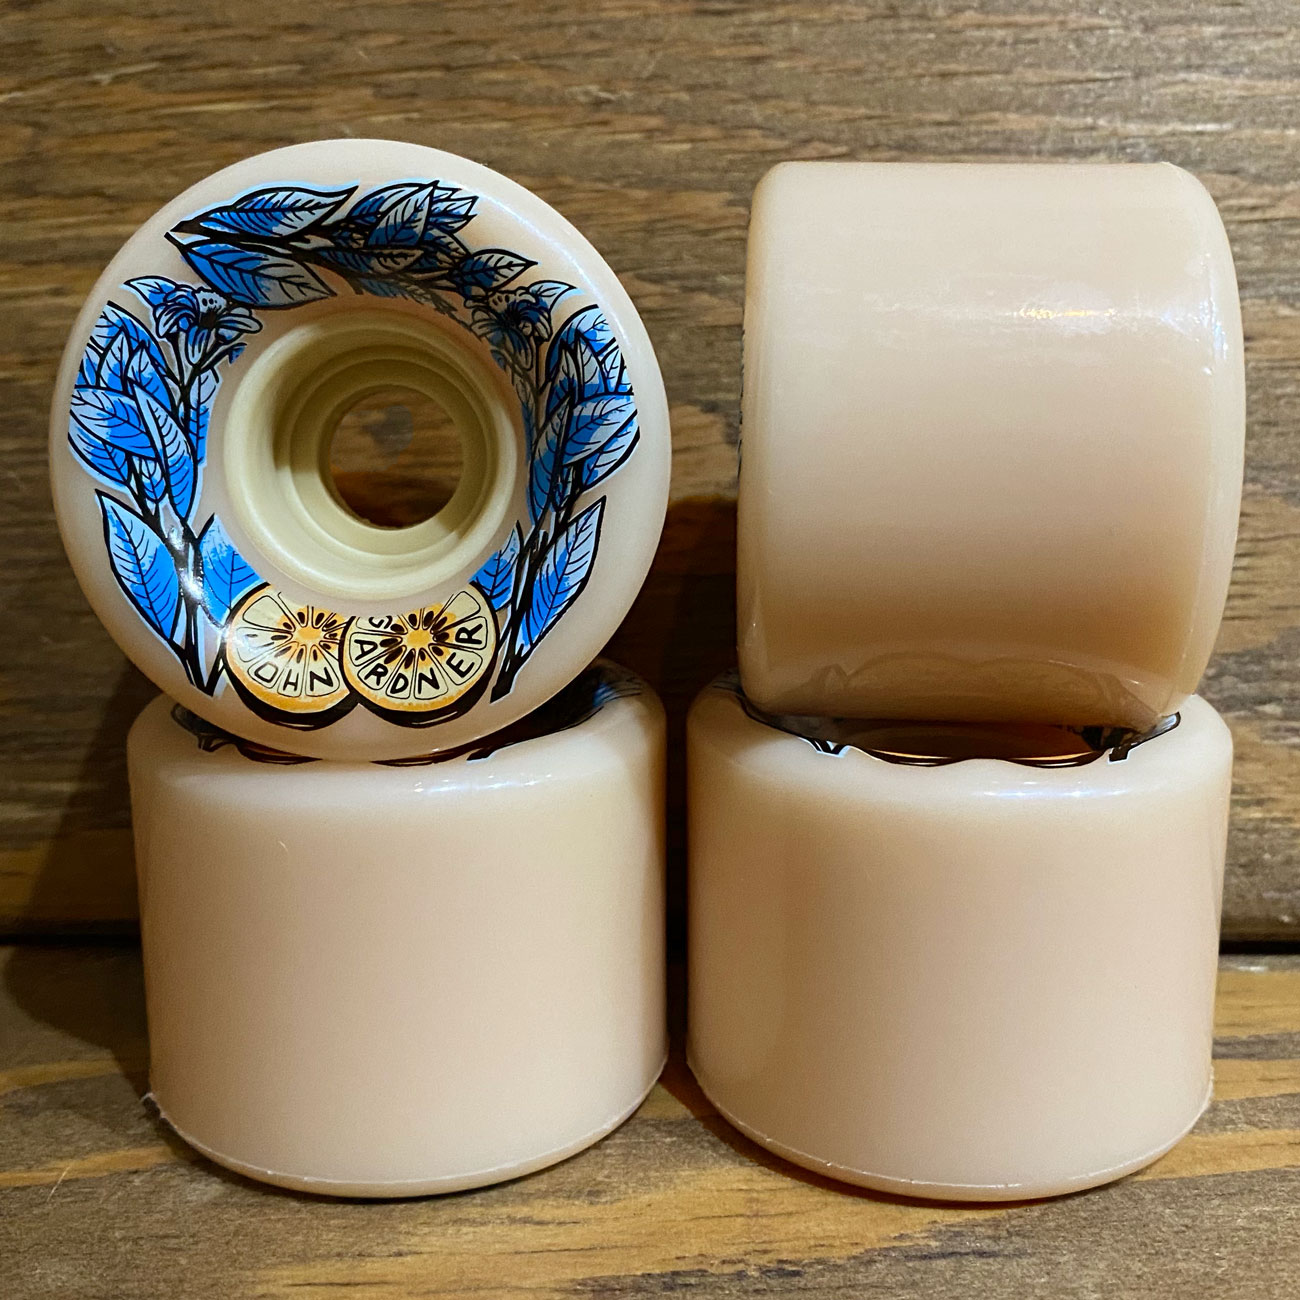 OJ WHEELS SUPER JUICE MINI 78A 55mm JOHN GARDNER